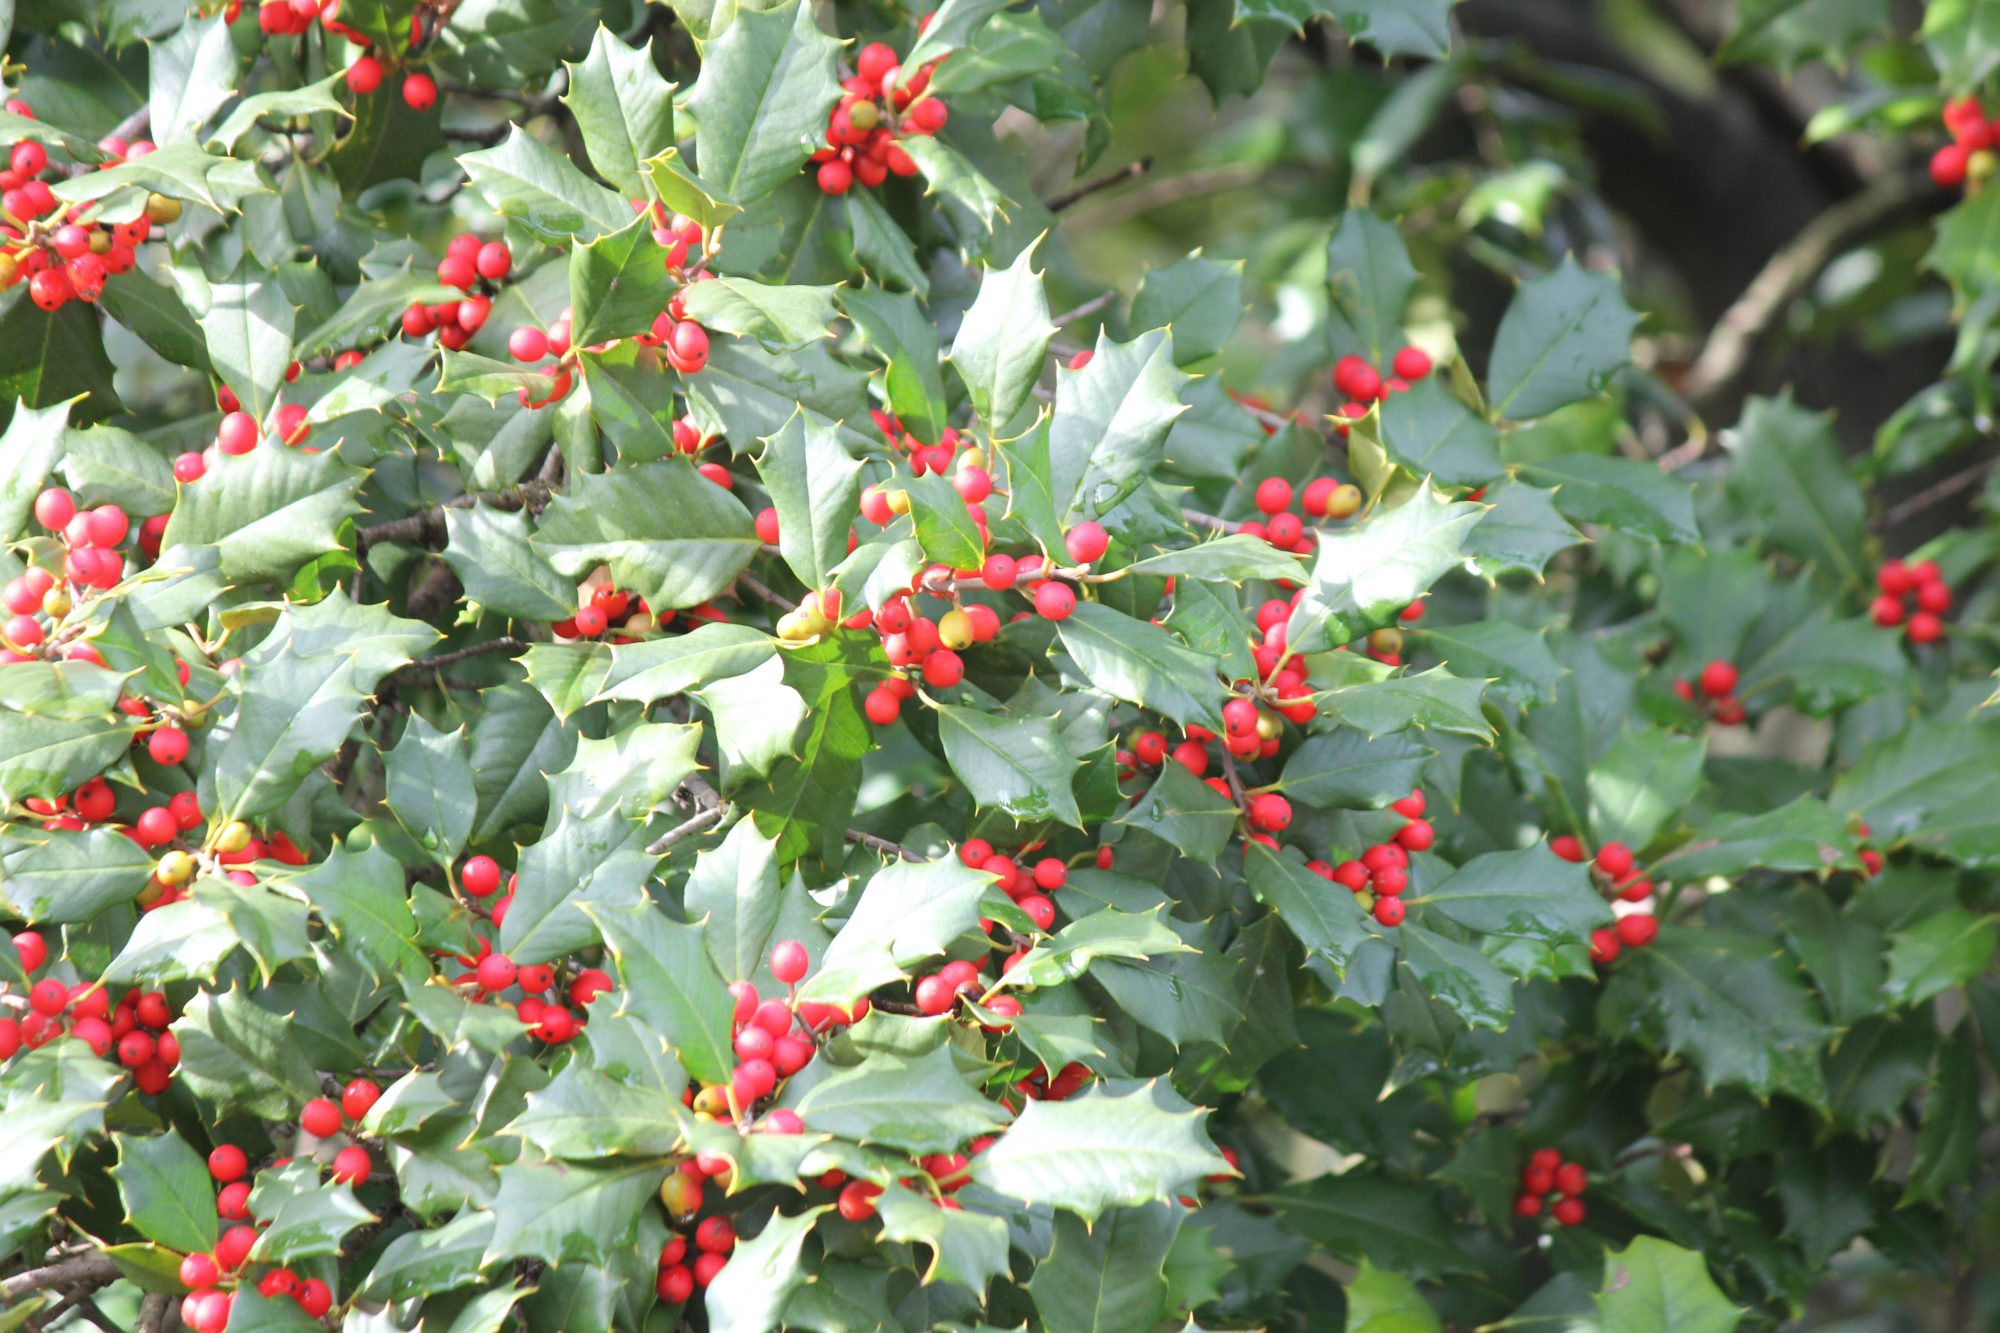 american holly tree with blooming red berries